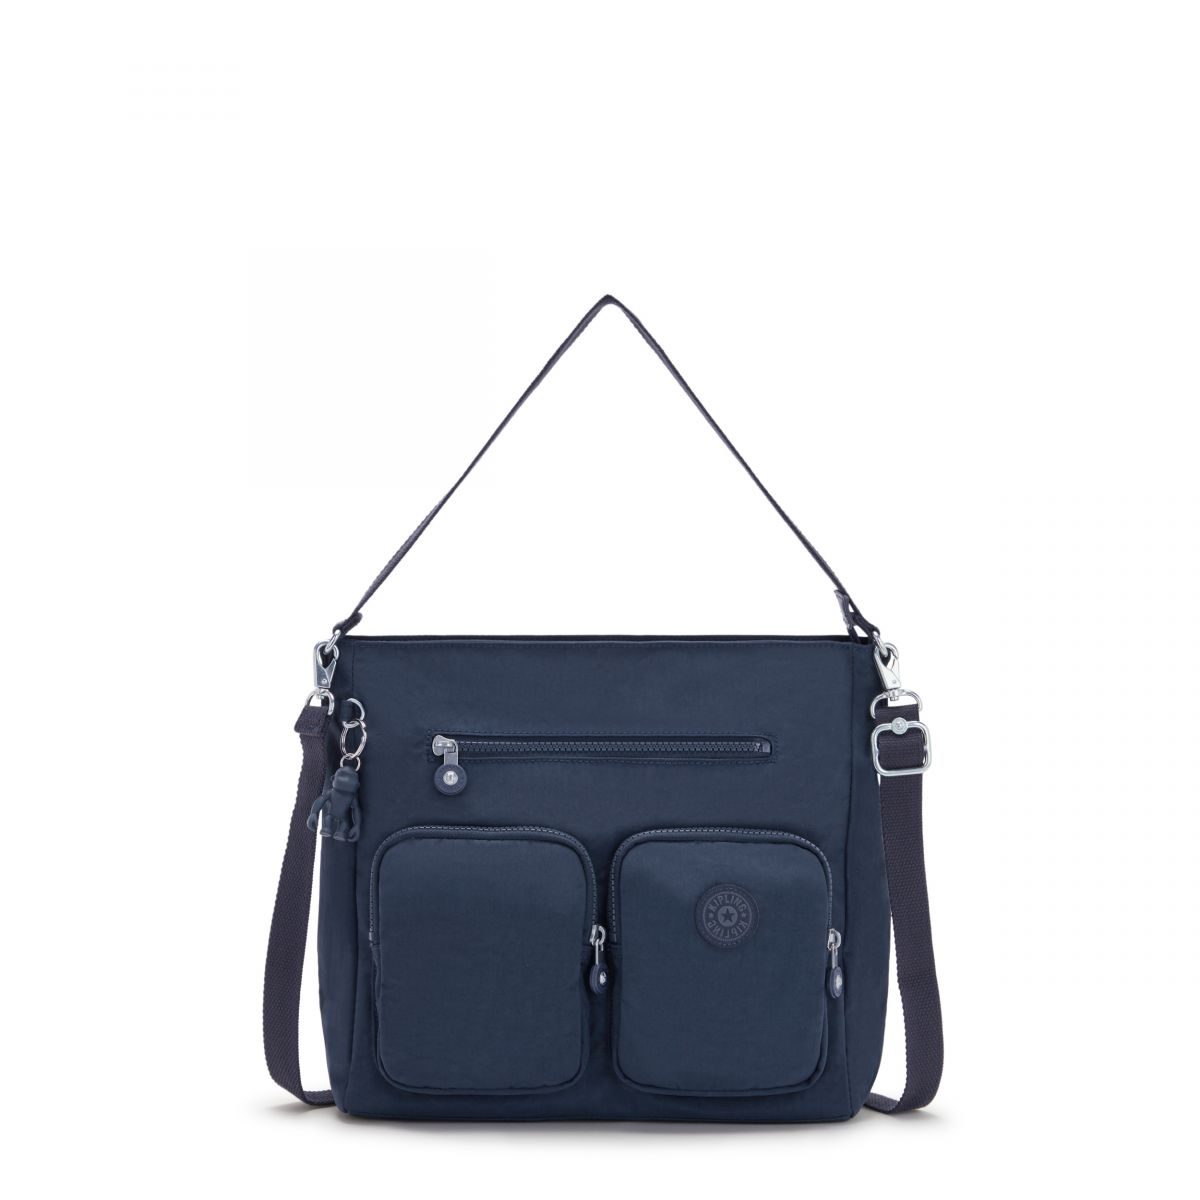 TASMO NEW IN by Kipling - Front view